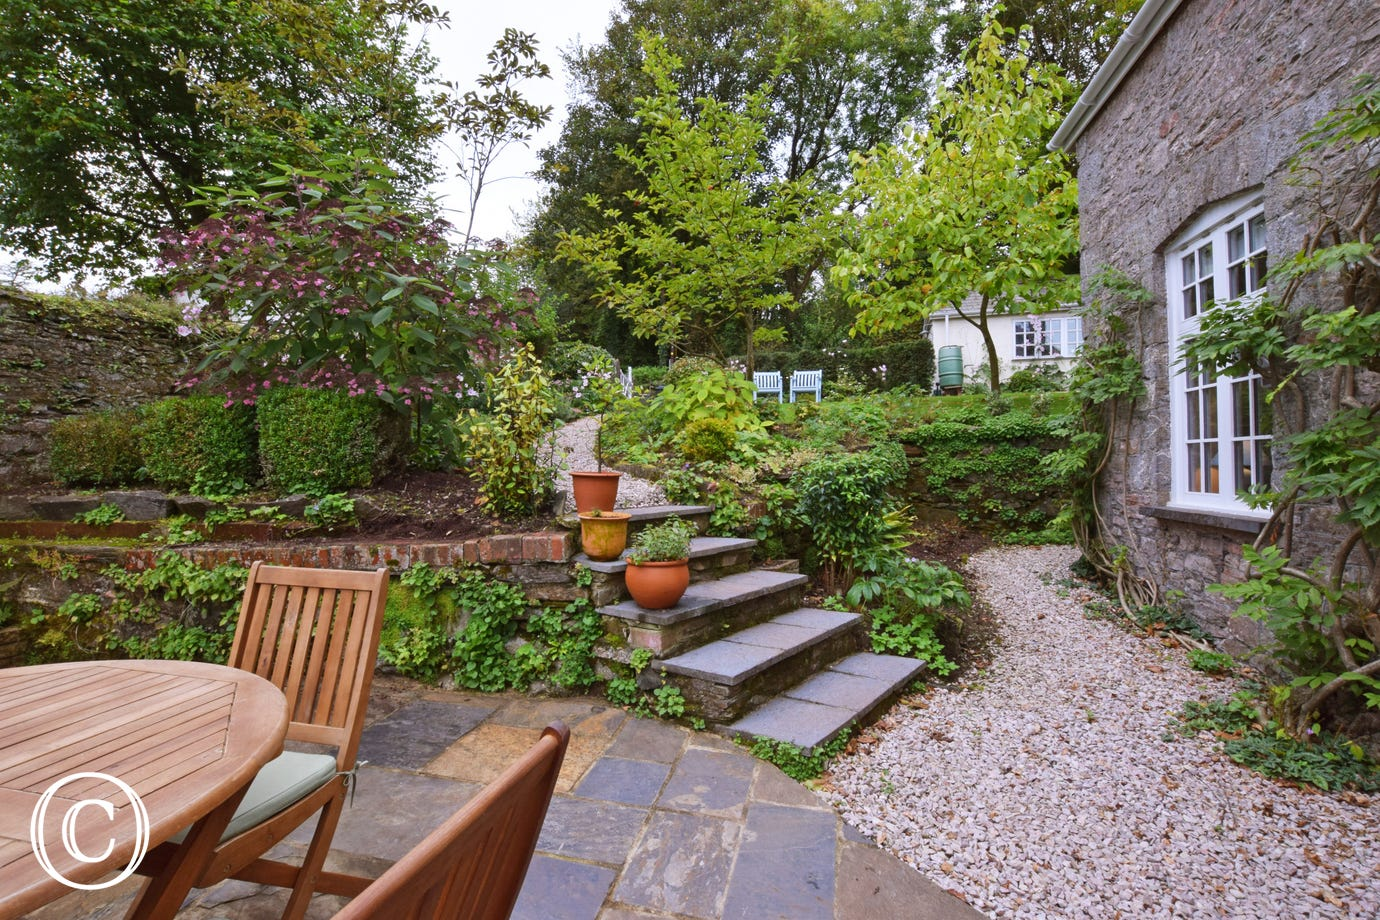 Wild Rose Cottage, Asprington - Garden - View 2